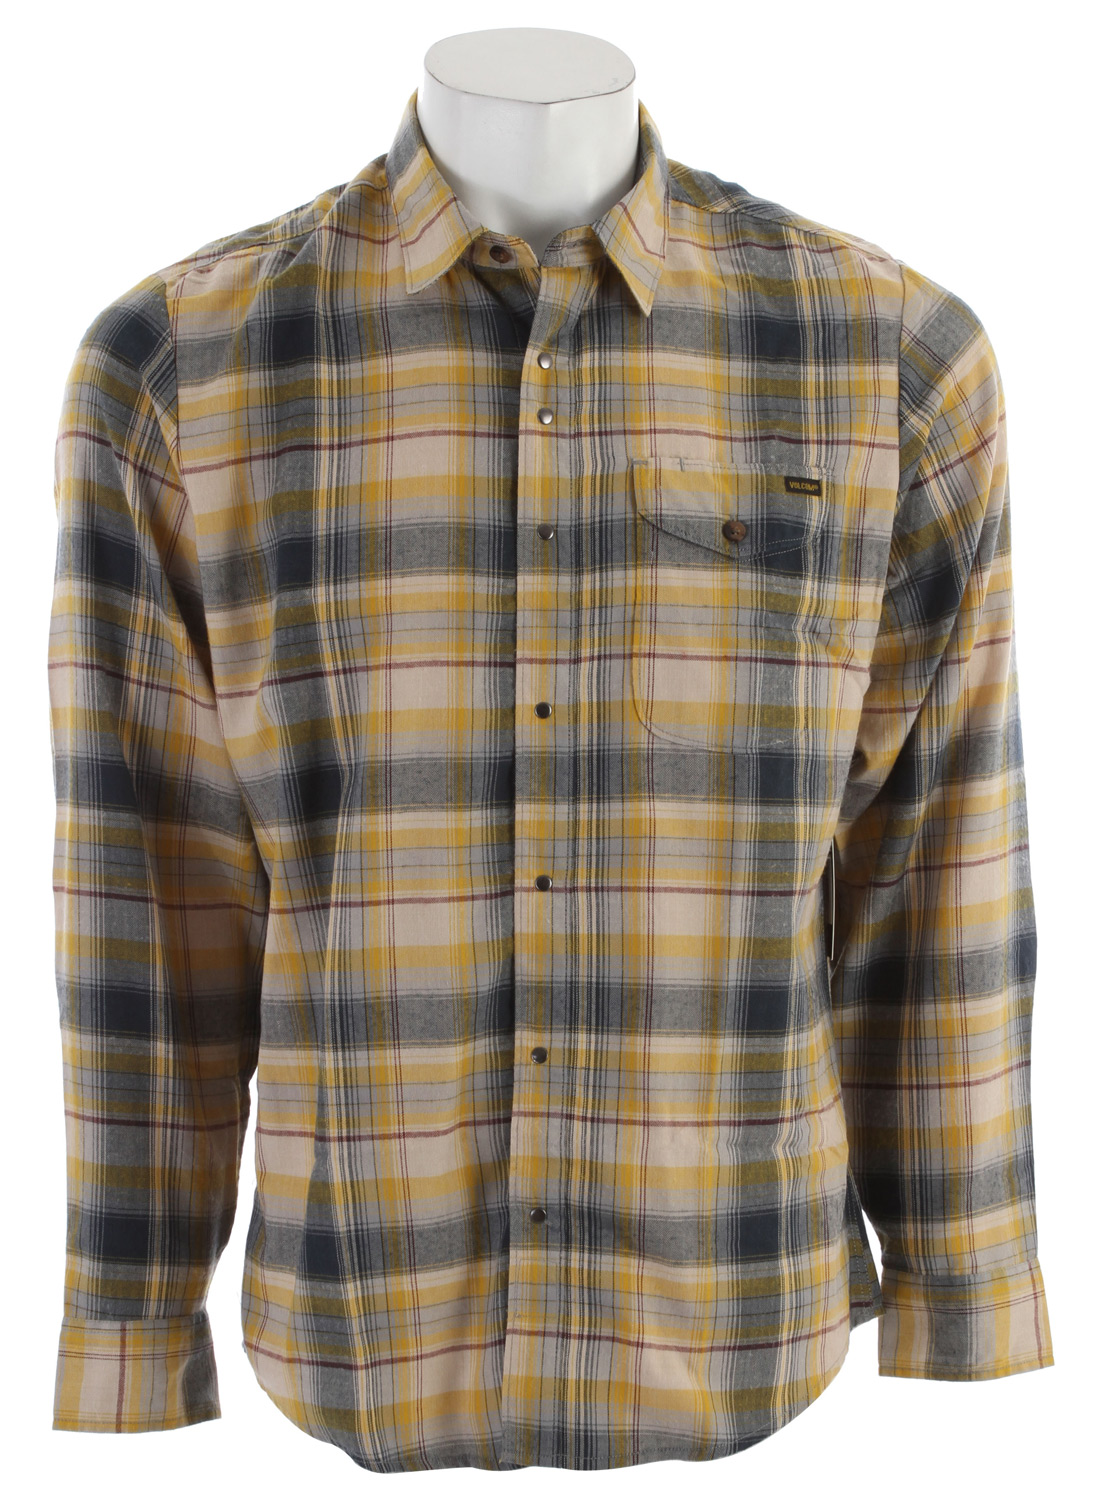 Surf Key Features of the Volcom Wanton L/S Shirt: Classic fit Center front snap closure Chambray contrast inner collar and yoke detail Workwear tab label 65% polyester/35% rayon brushed yarn dye plaid with herringbone stripe Workwear Collection - $41.95